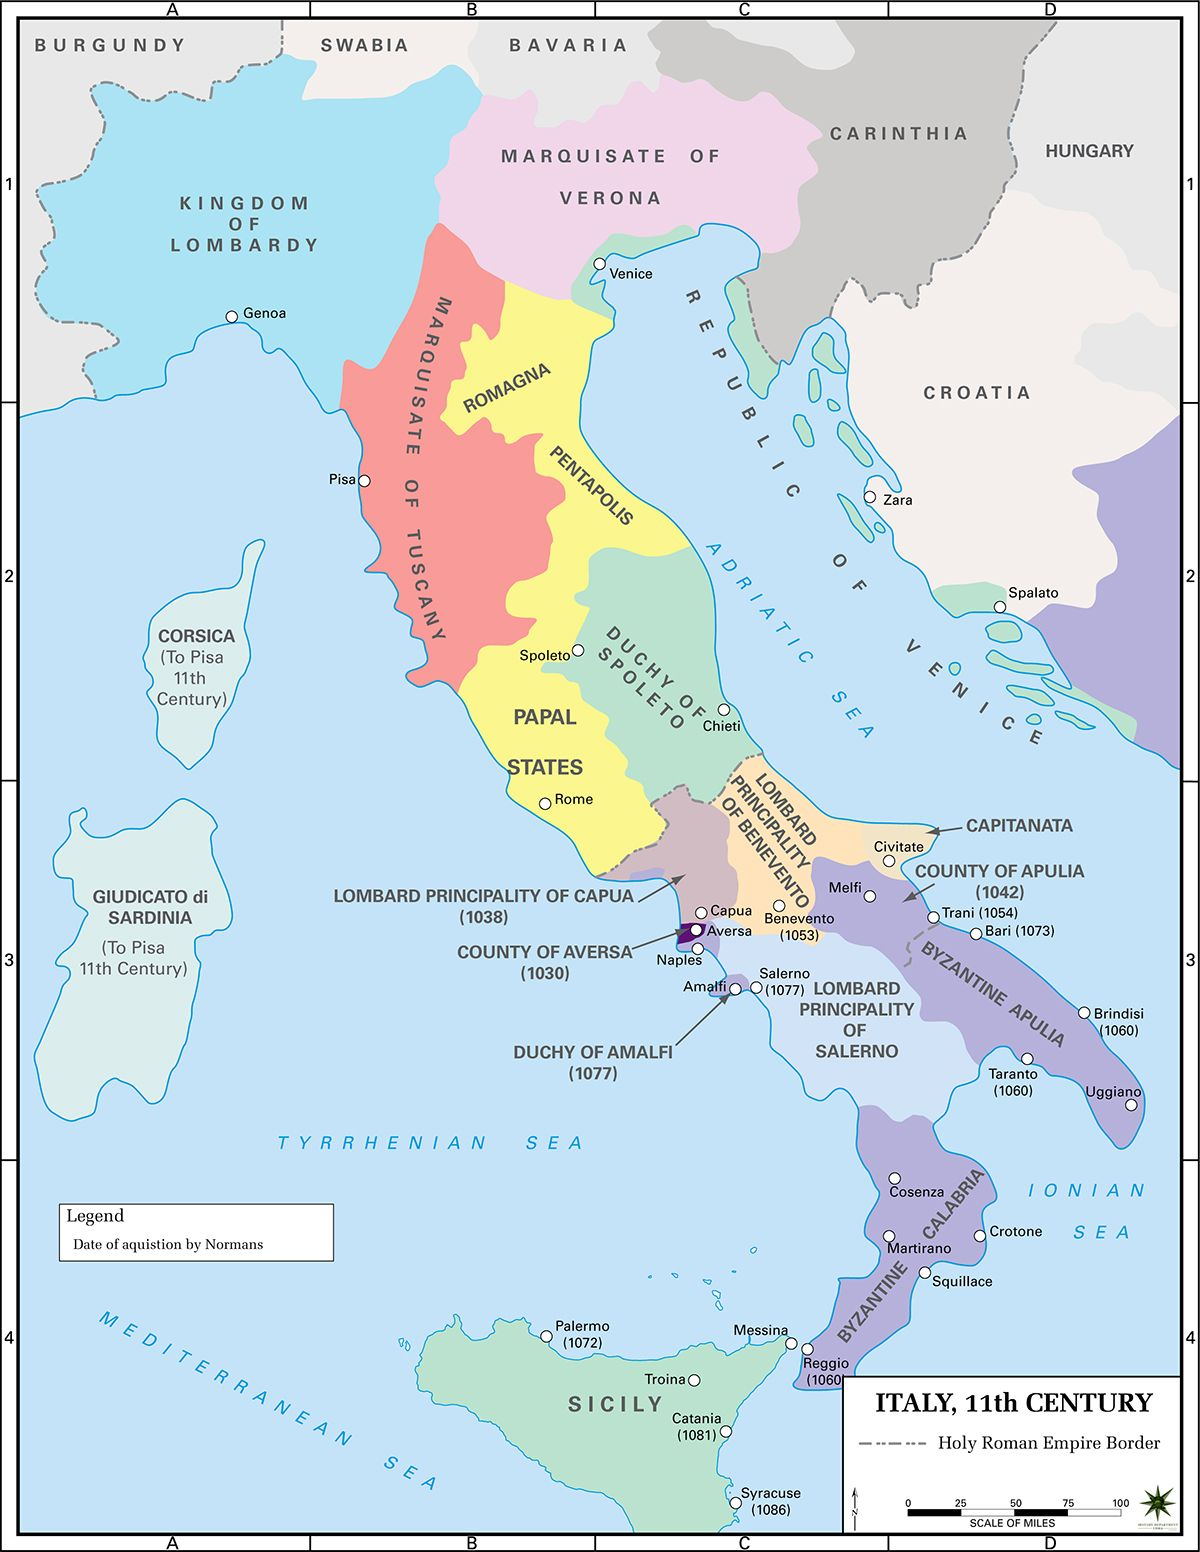 Political Map Of Italy In The Eleventh Century Mystery Of History Volume 2 Lesson 56 Mohii56